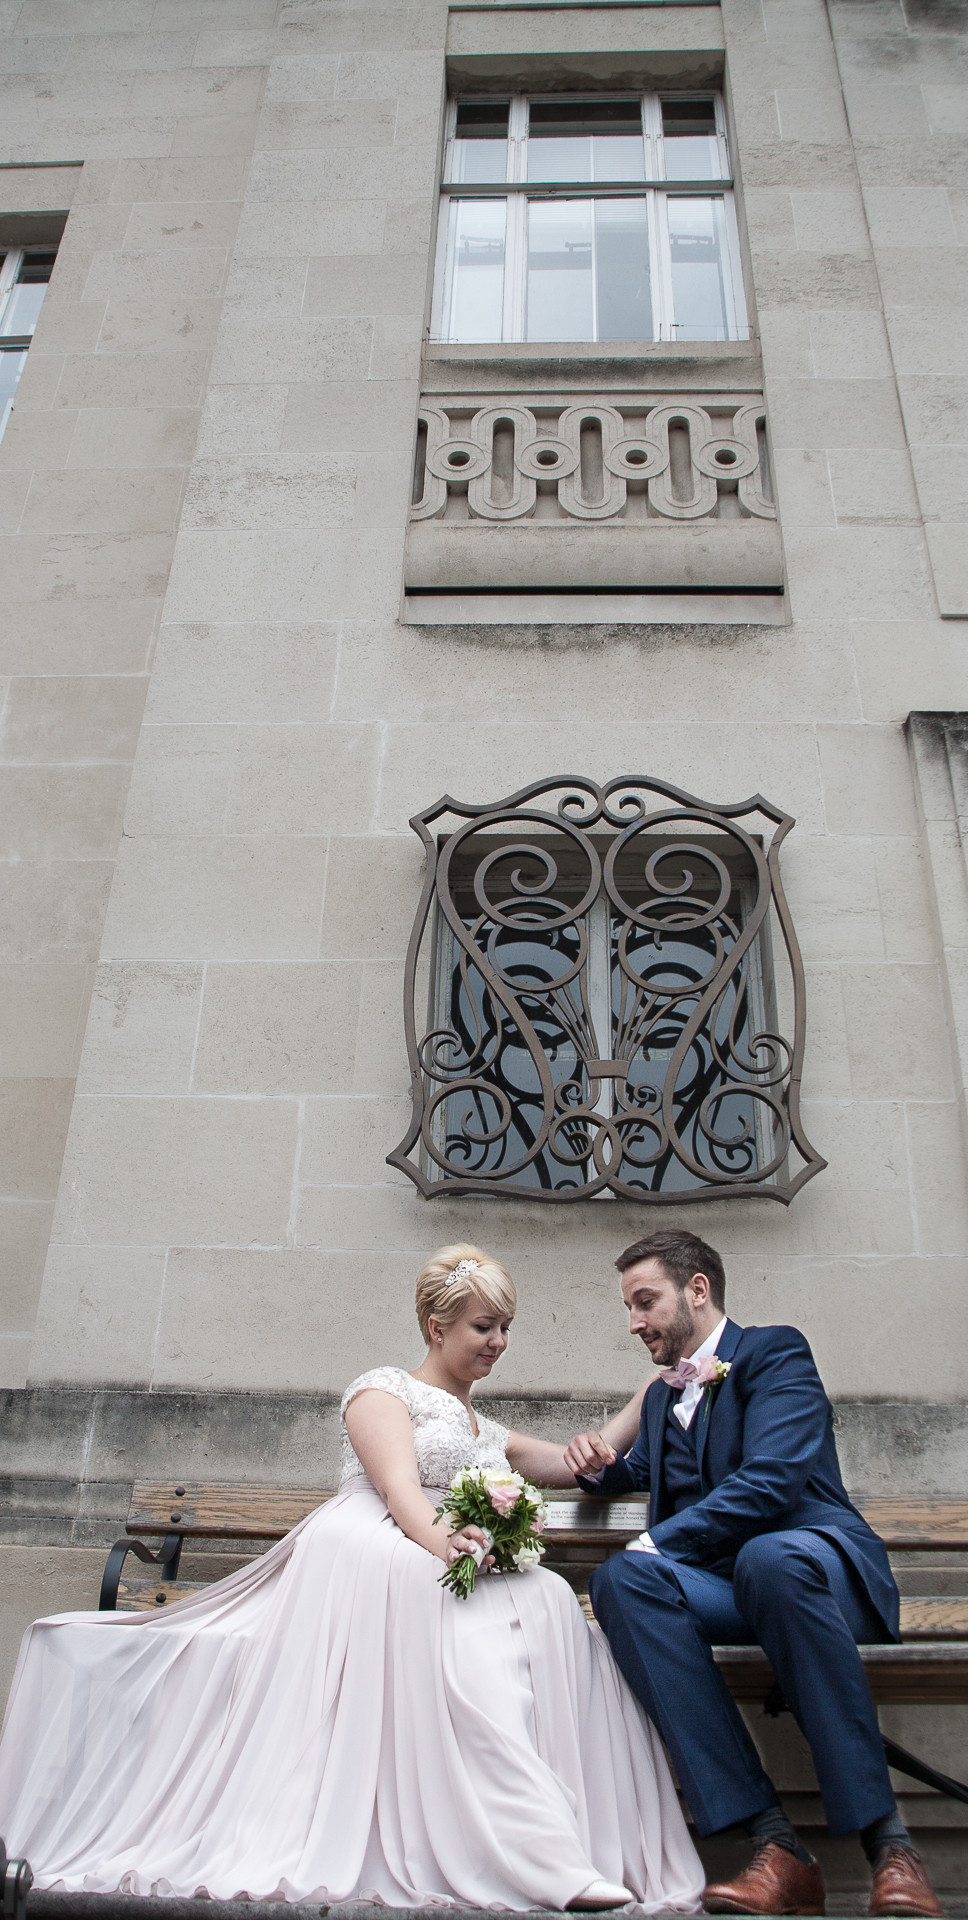 Wandsworth Town Hall wedding photography by Taz Rahman, London wedding photographer